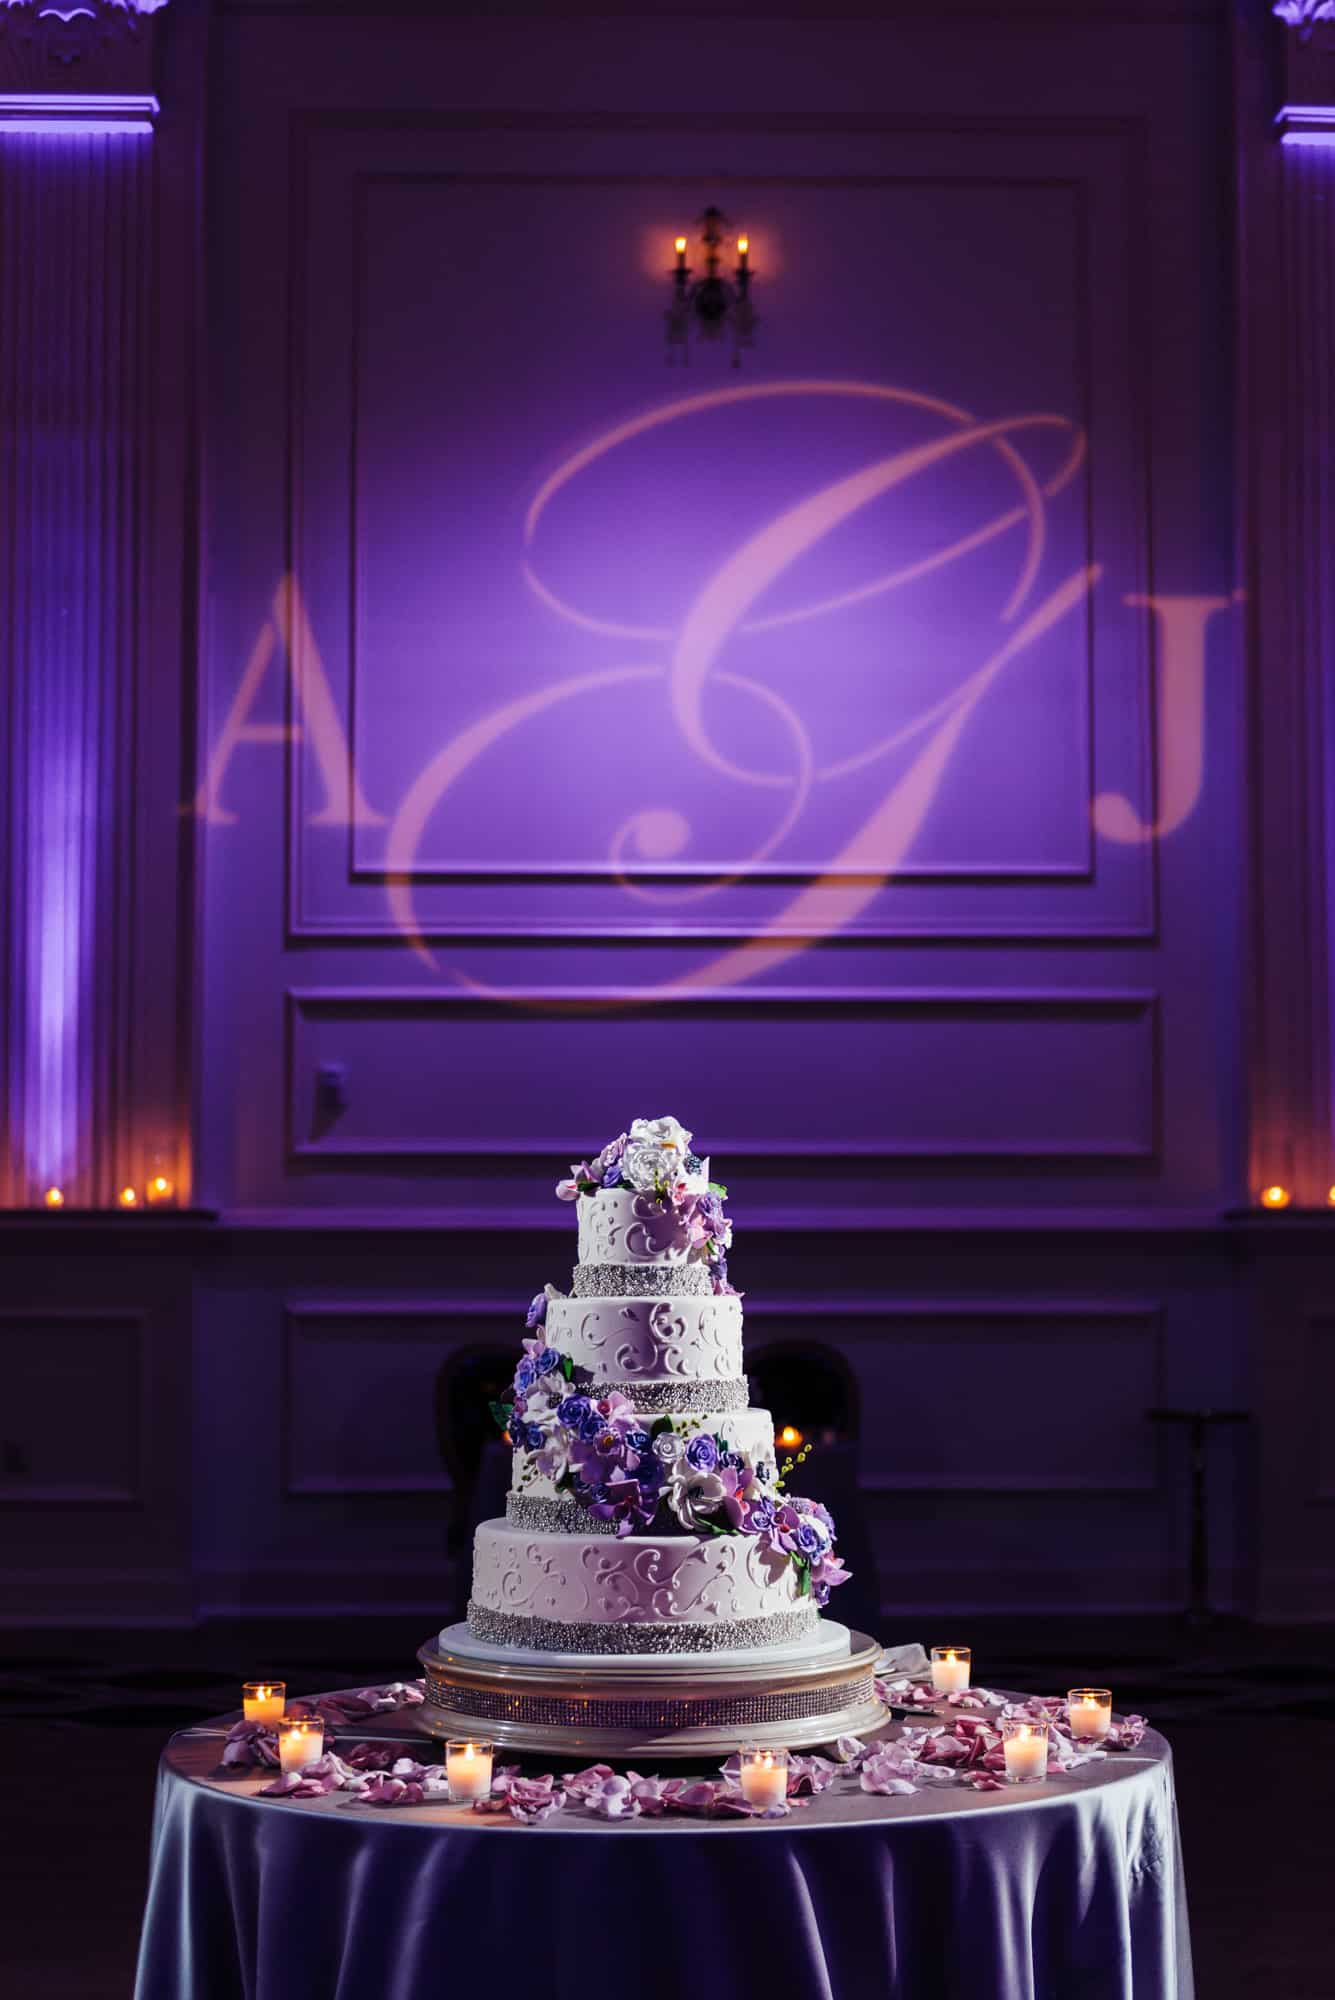 Wedding cake with purple background at Cescaphe Ballroom